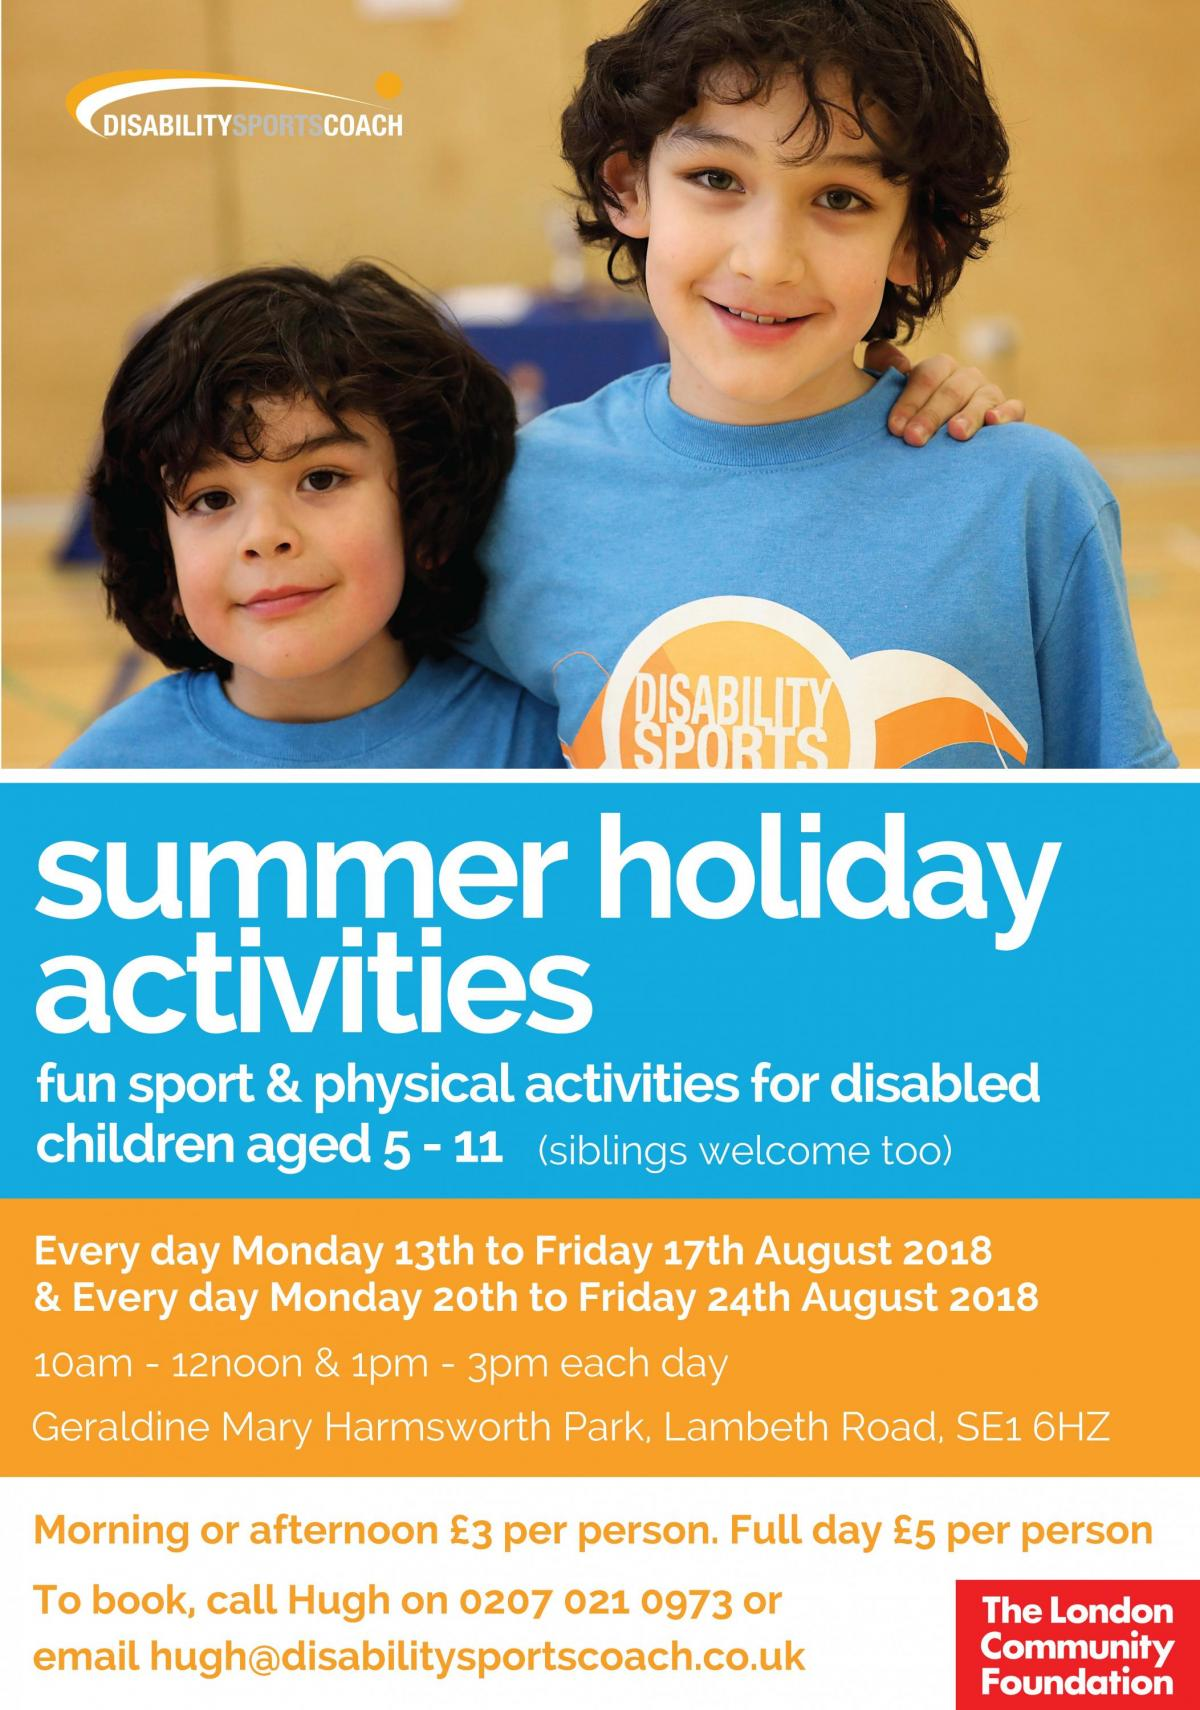 Summer Holiday Activities - fun sport & physical activities for disabled people aged 5-11